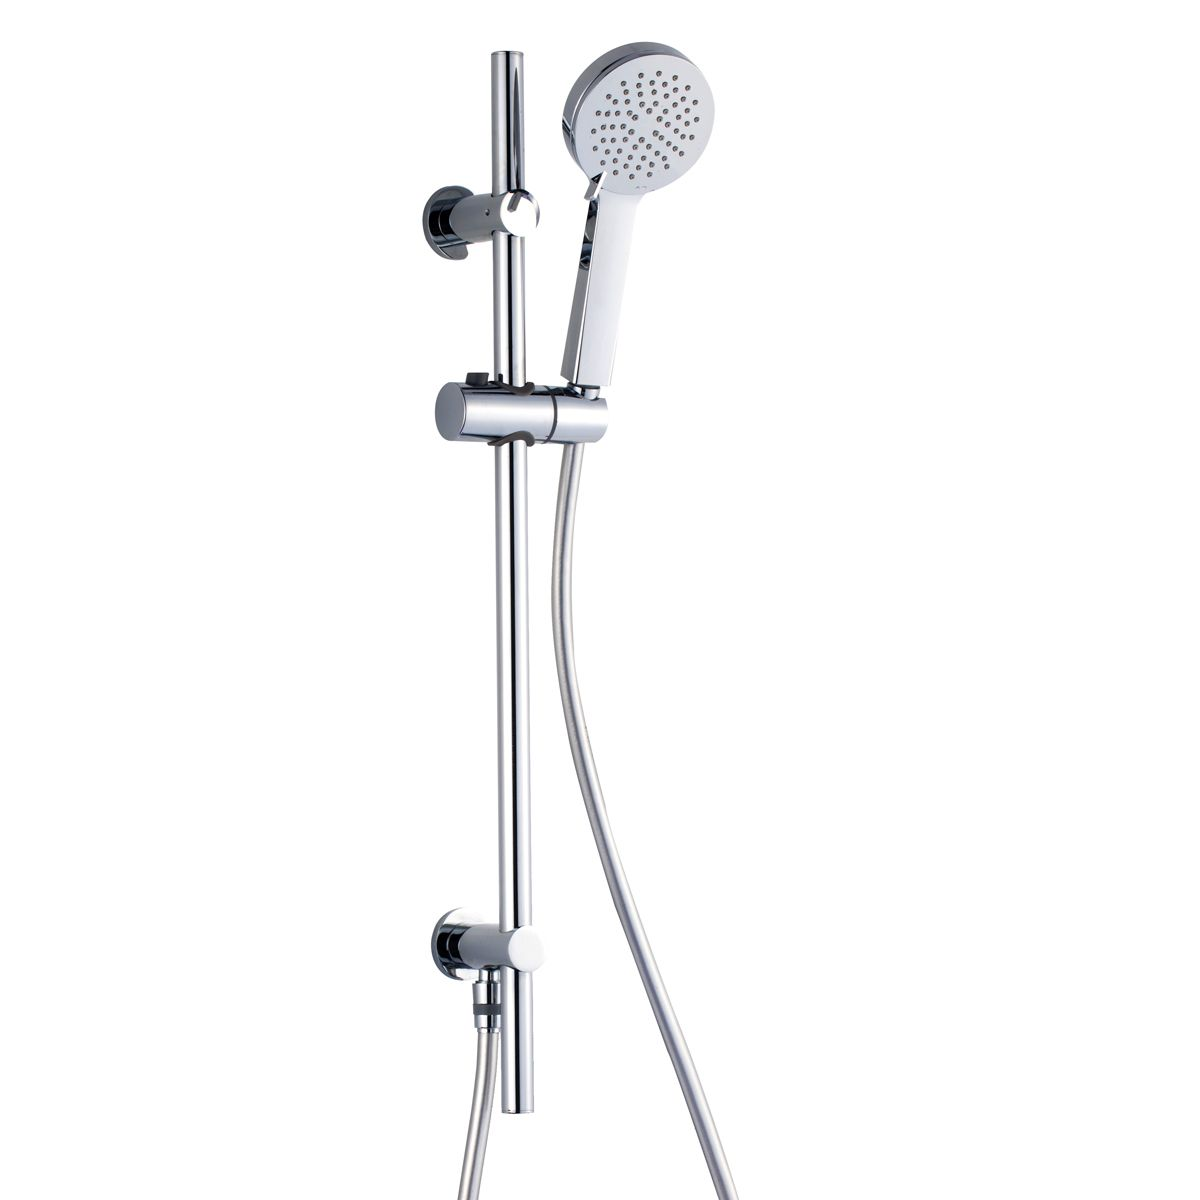 RAK Chrome Square Slide Rail Shower Kit with 3 Function Shower Head and Integral Wall Outlet